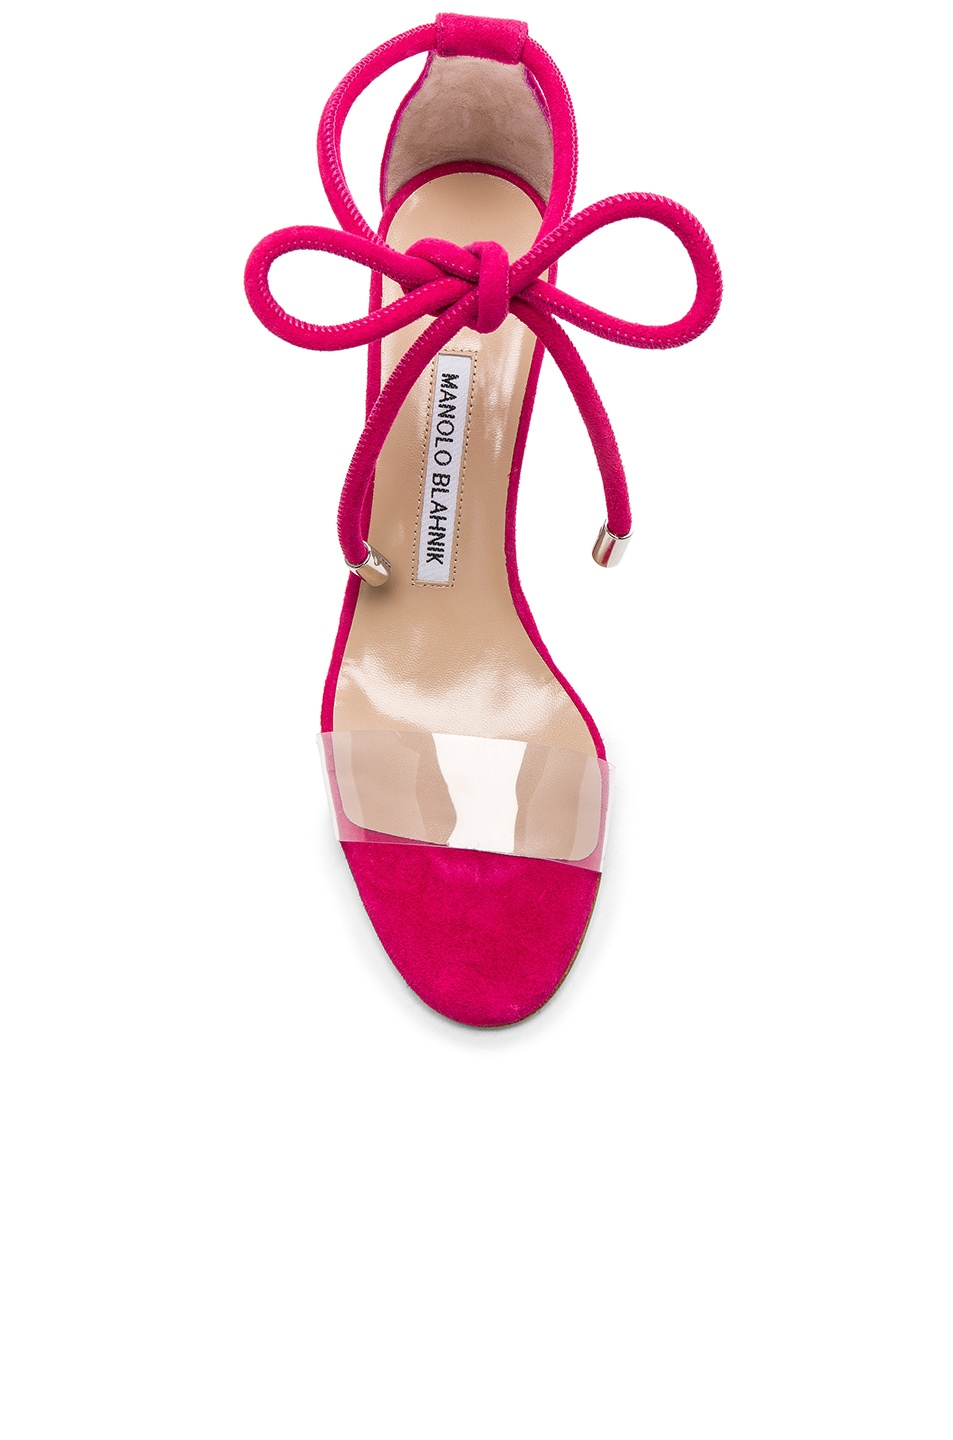 Image 4 of Manolo Blahnik Suede Estro 70 Sandals in Fuxia Suede